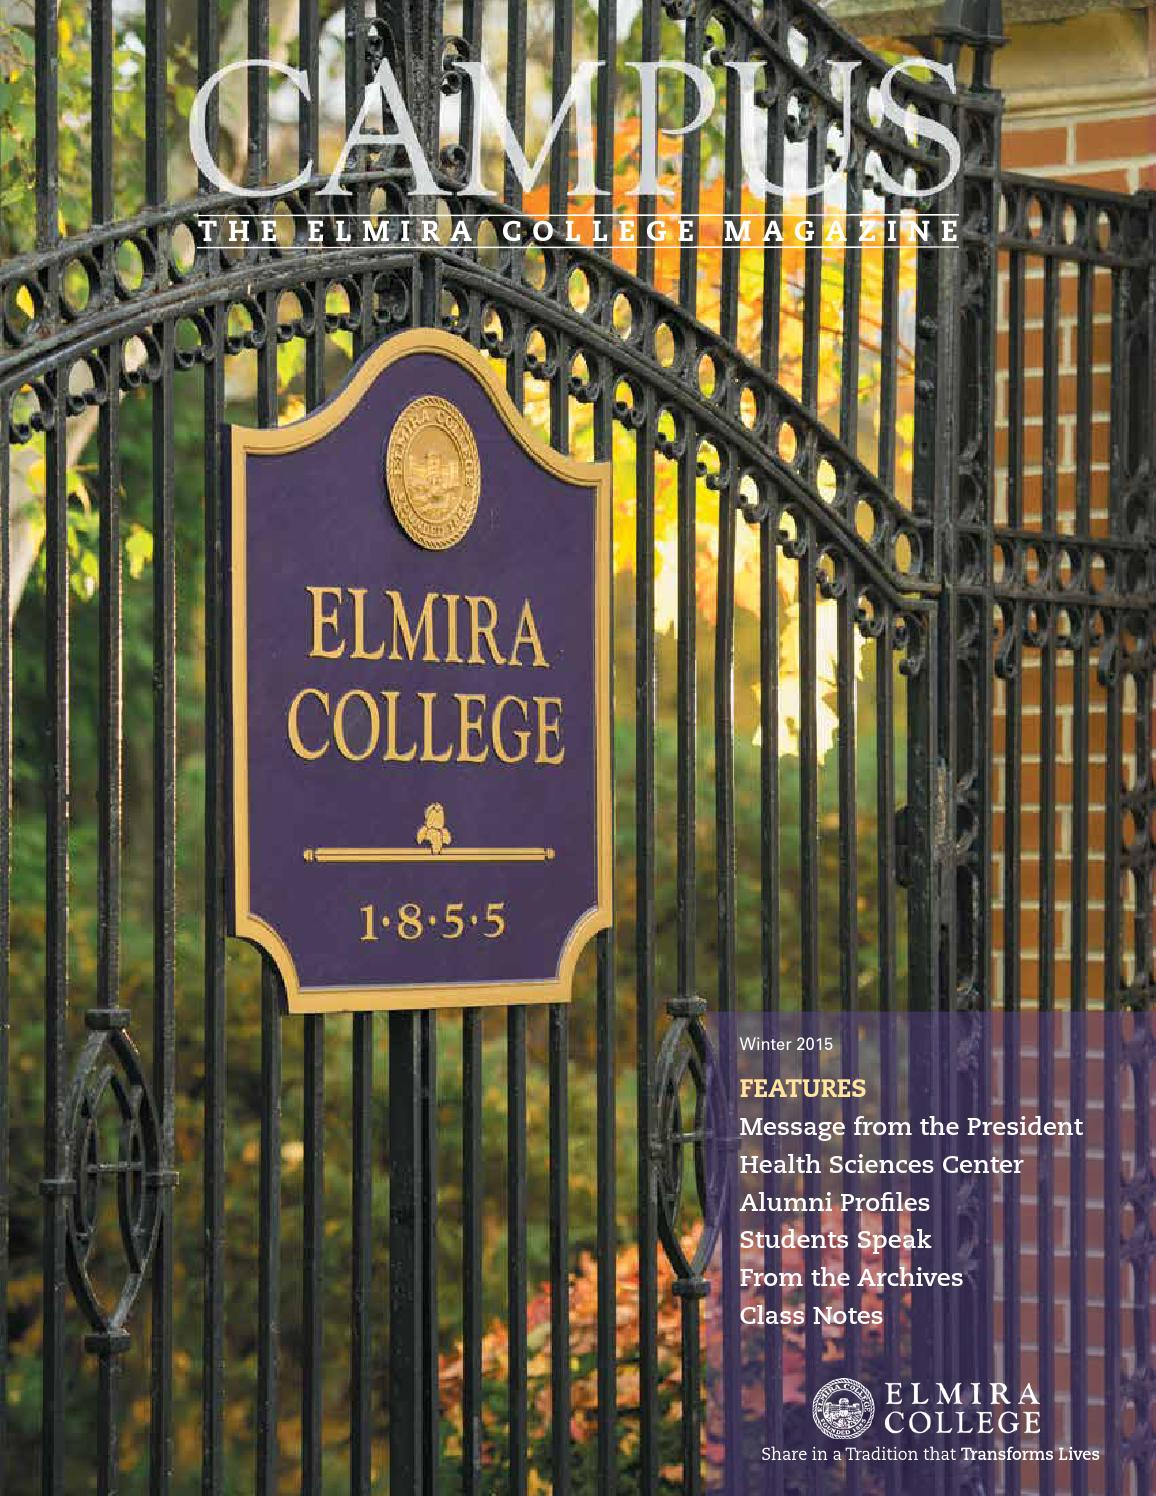 Campus The Elmira College Magazine Winter 2015 By How To Tie A Double Windsor Knot Diagram Pictures 1 Issuu